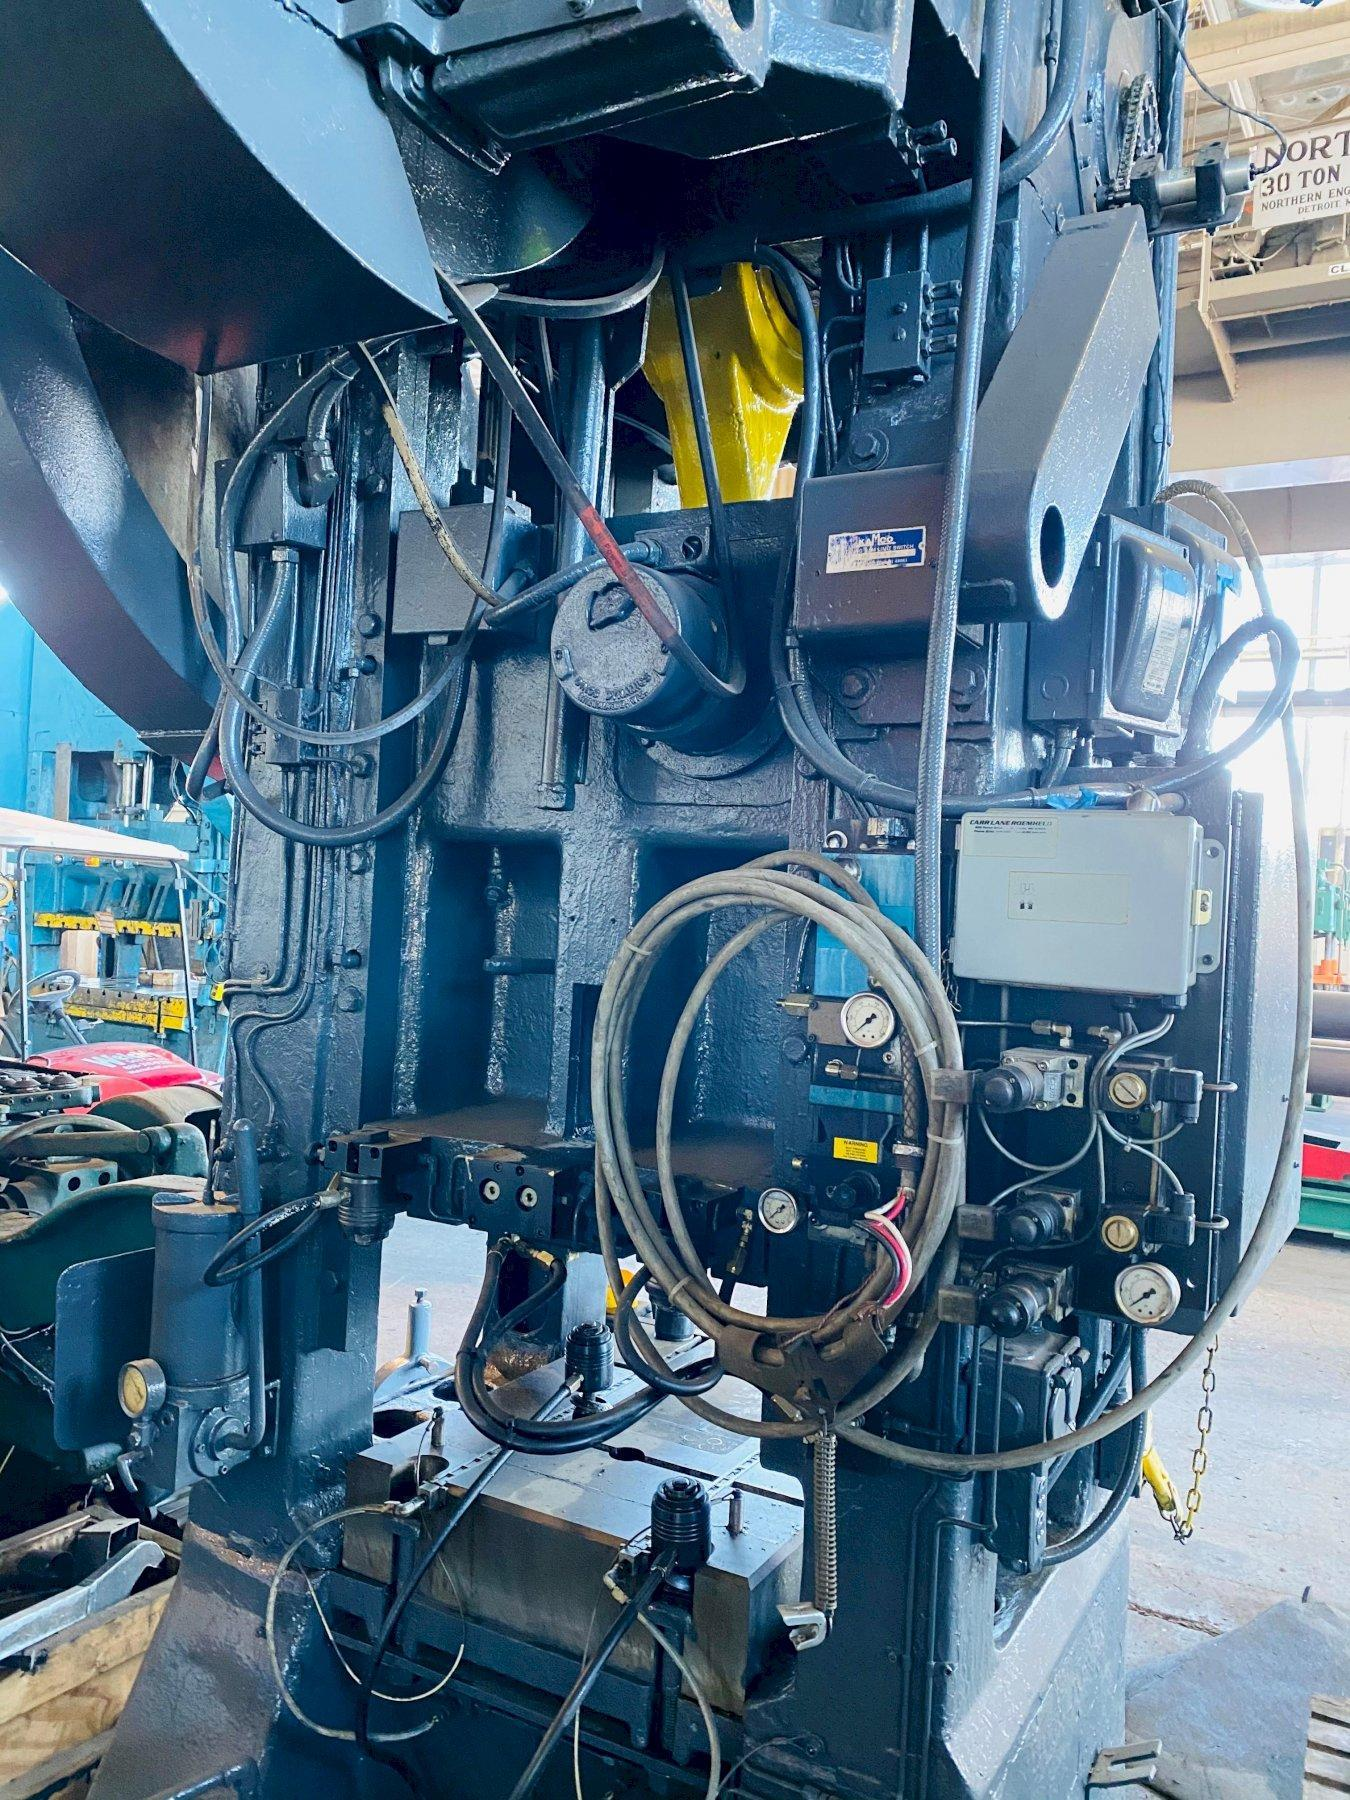 100 TON BLISS S1-100-24-30 STRAIGHT SIDE PRESS. STOCK # 1263020